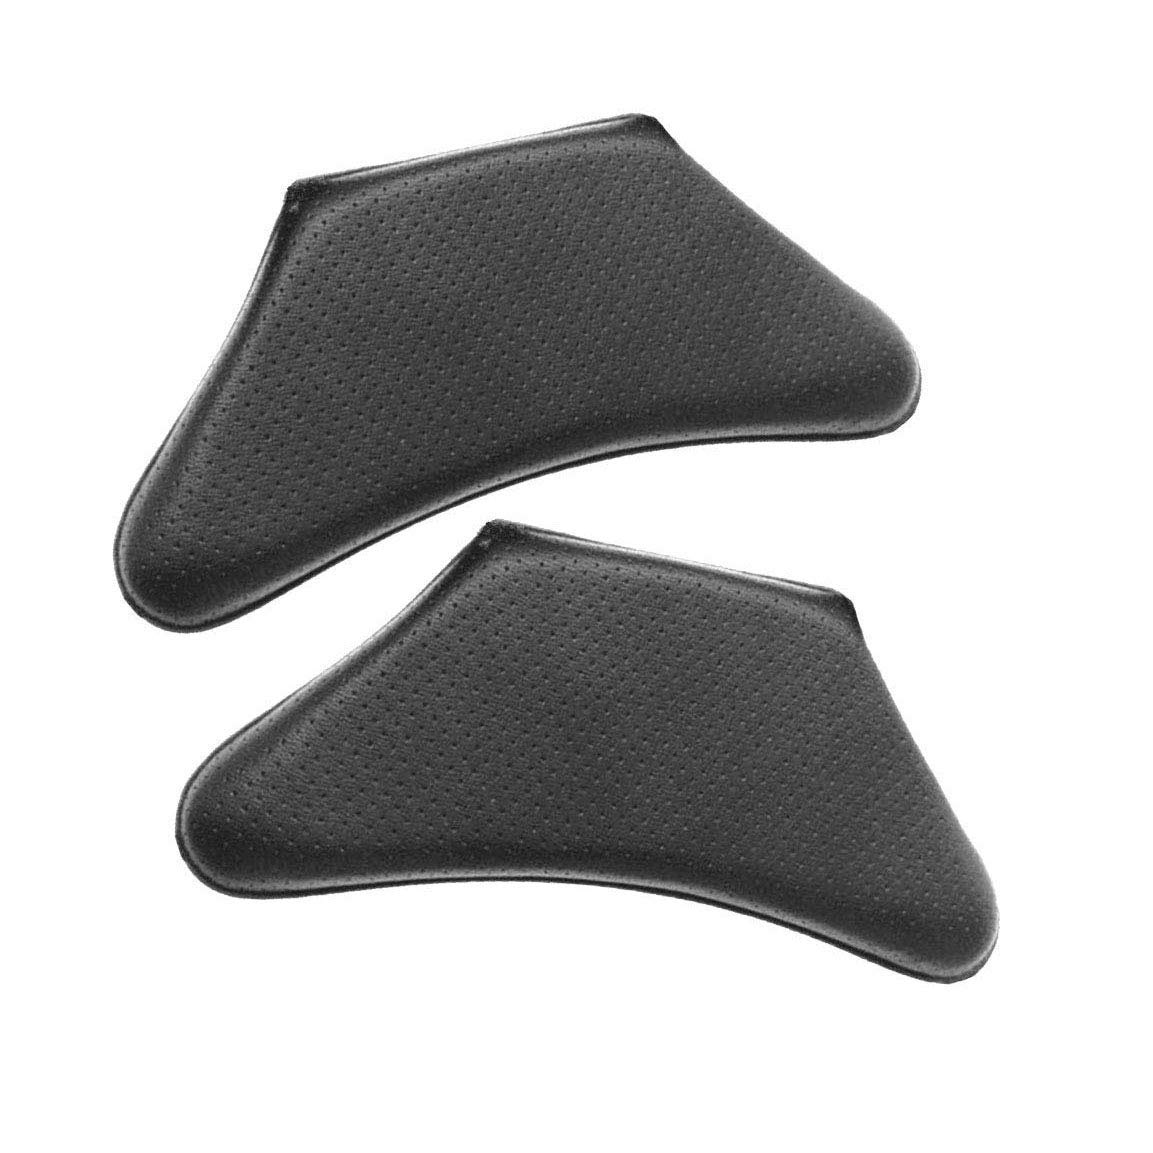 TamBee HTC Vive PRO Headset Foam Replacement for HTC Vive PRO VR PU Leather Cover Face Mask Pad (Head Foam 2PC)